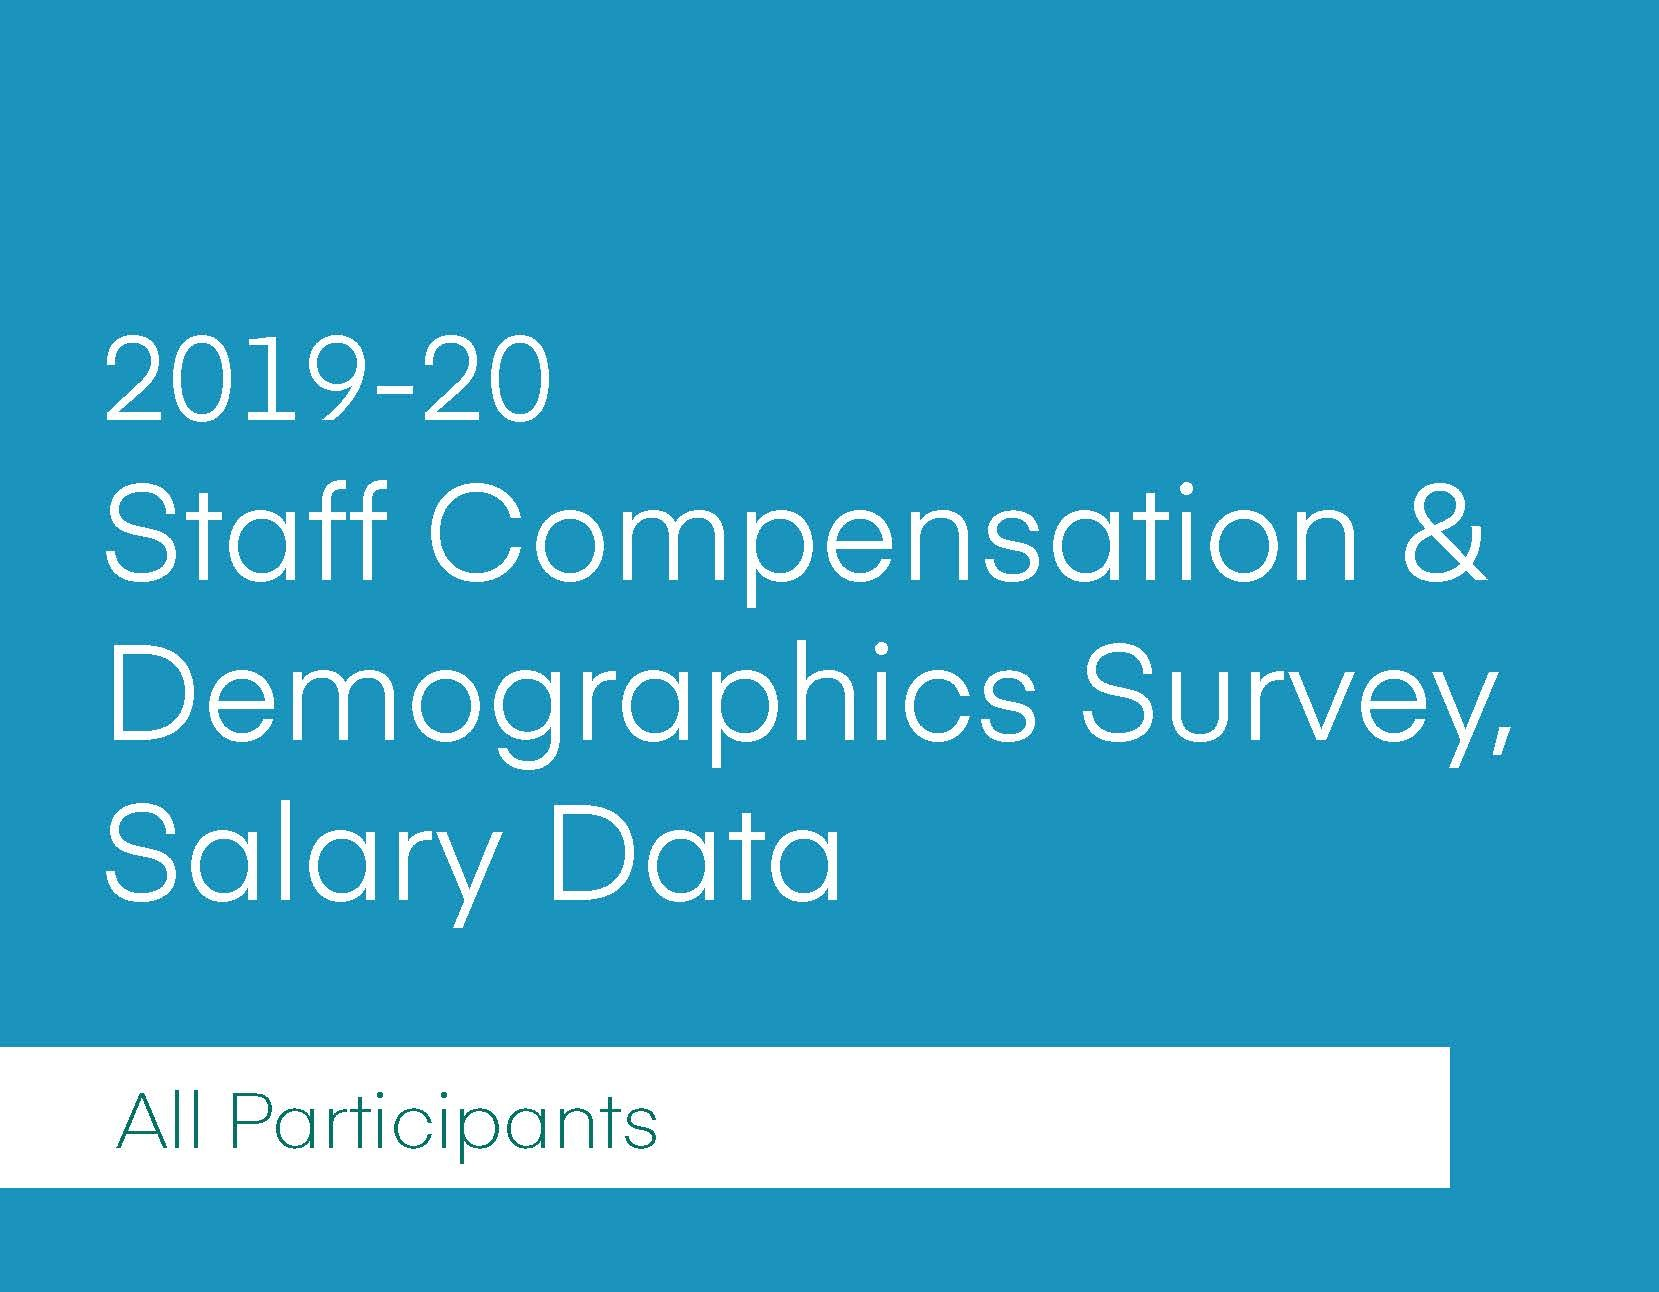 2019-2020 Staff Compensation & Demographics Survey (Download)